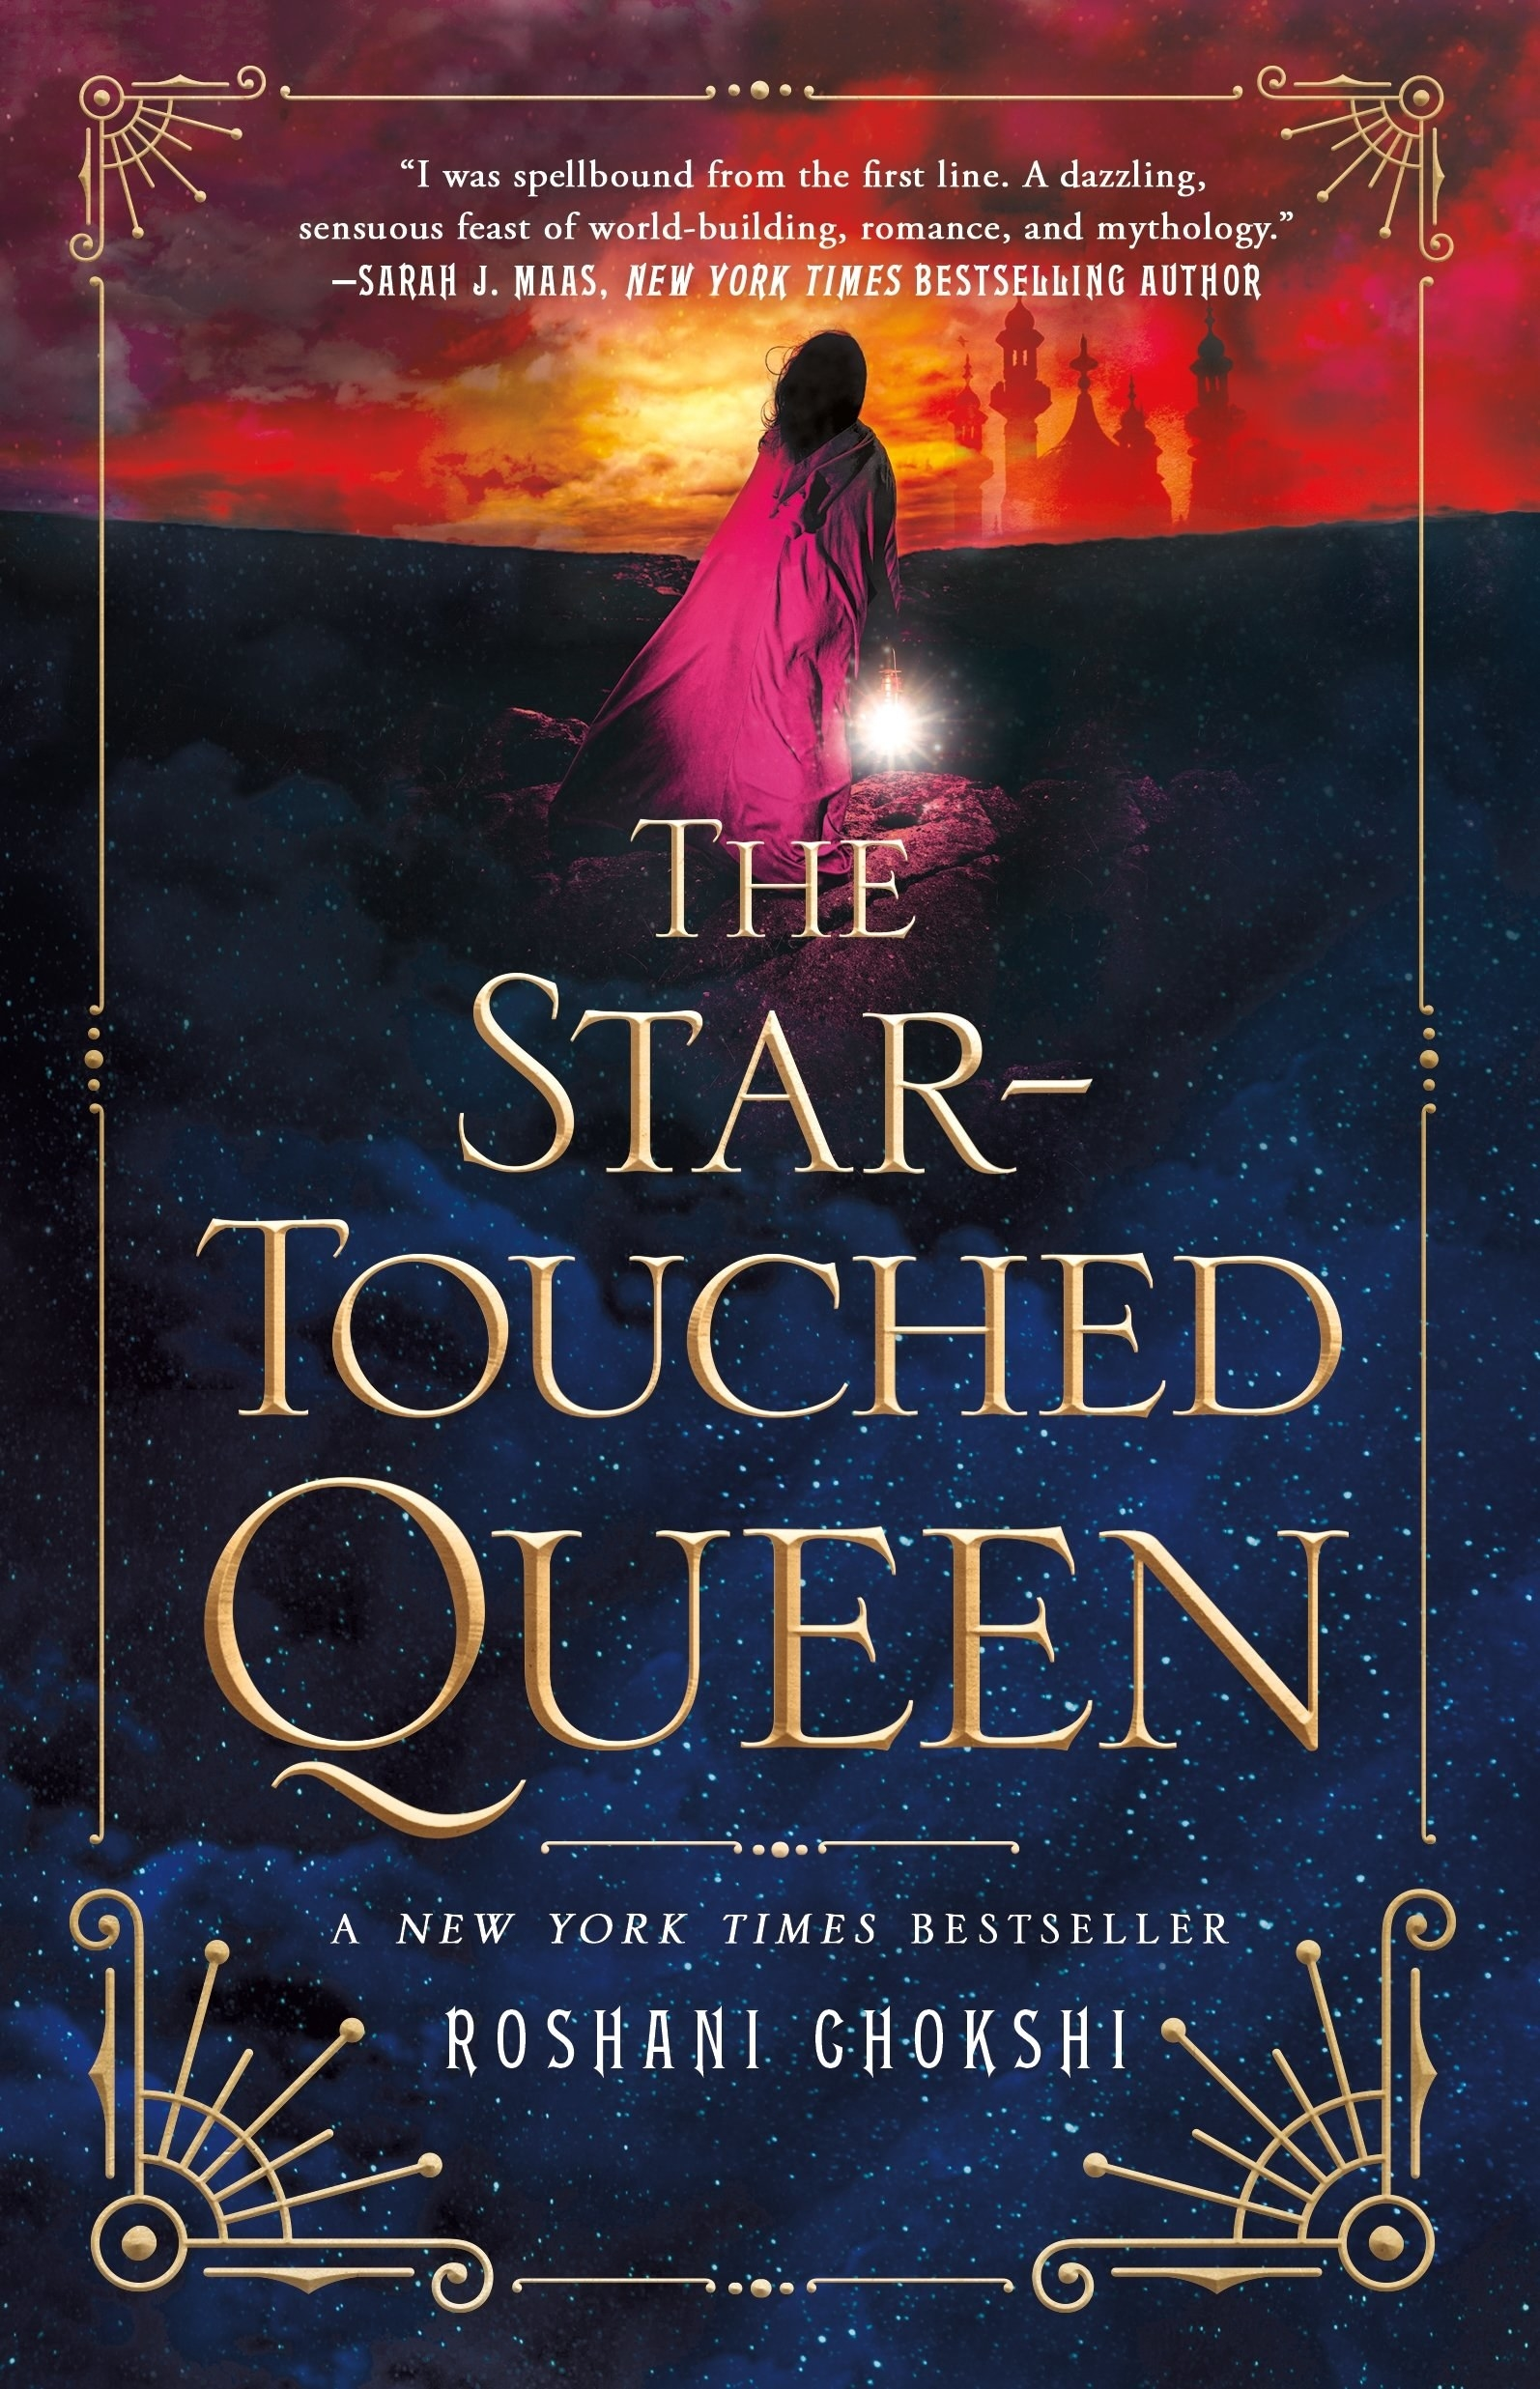 The Star-Touched Queen cover. Book by Roshani Chokshi.